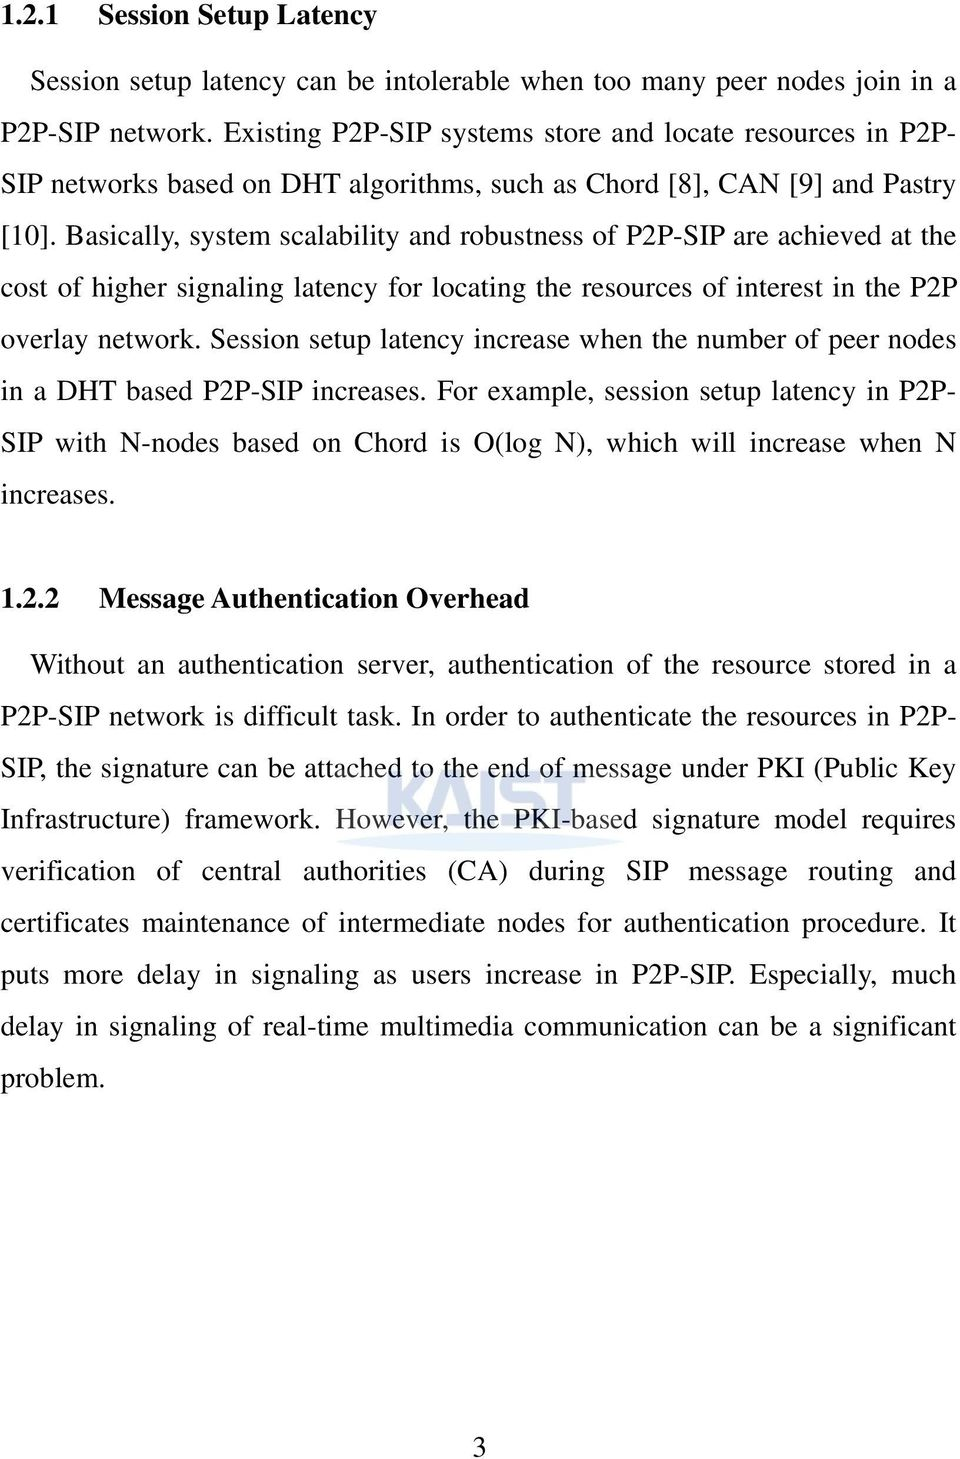 Basically, system scalability and robustness of P2P-SIP are achieved at the cost of higher signaling latency for locating the resources of interest in the P2P overlay network.